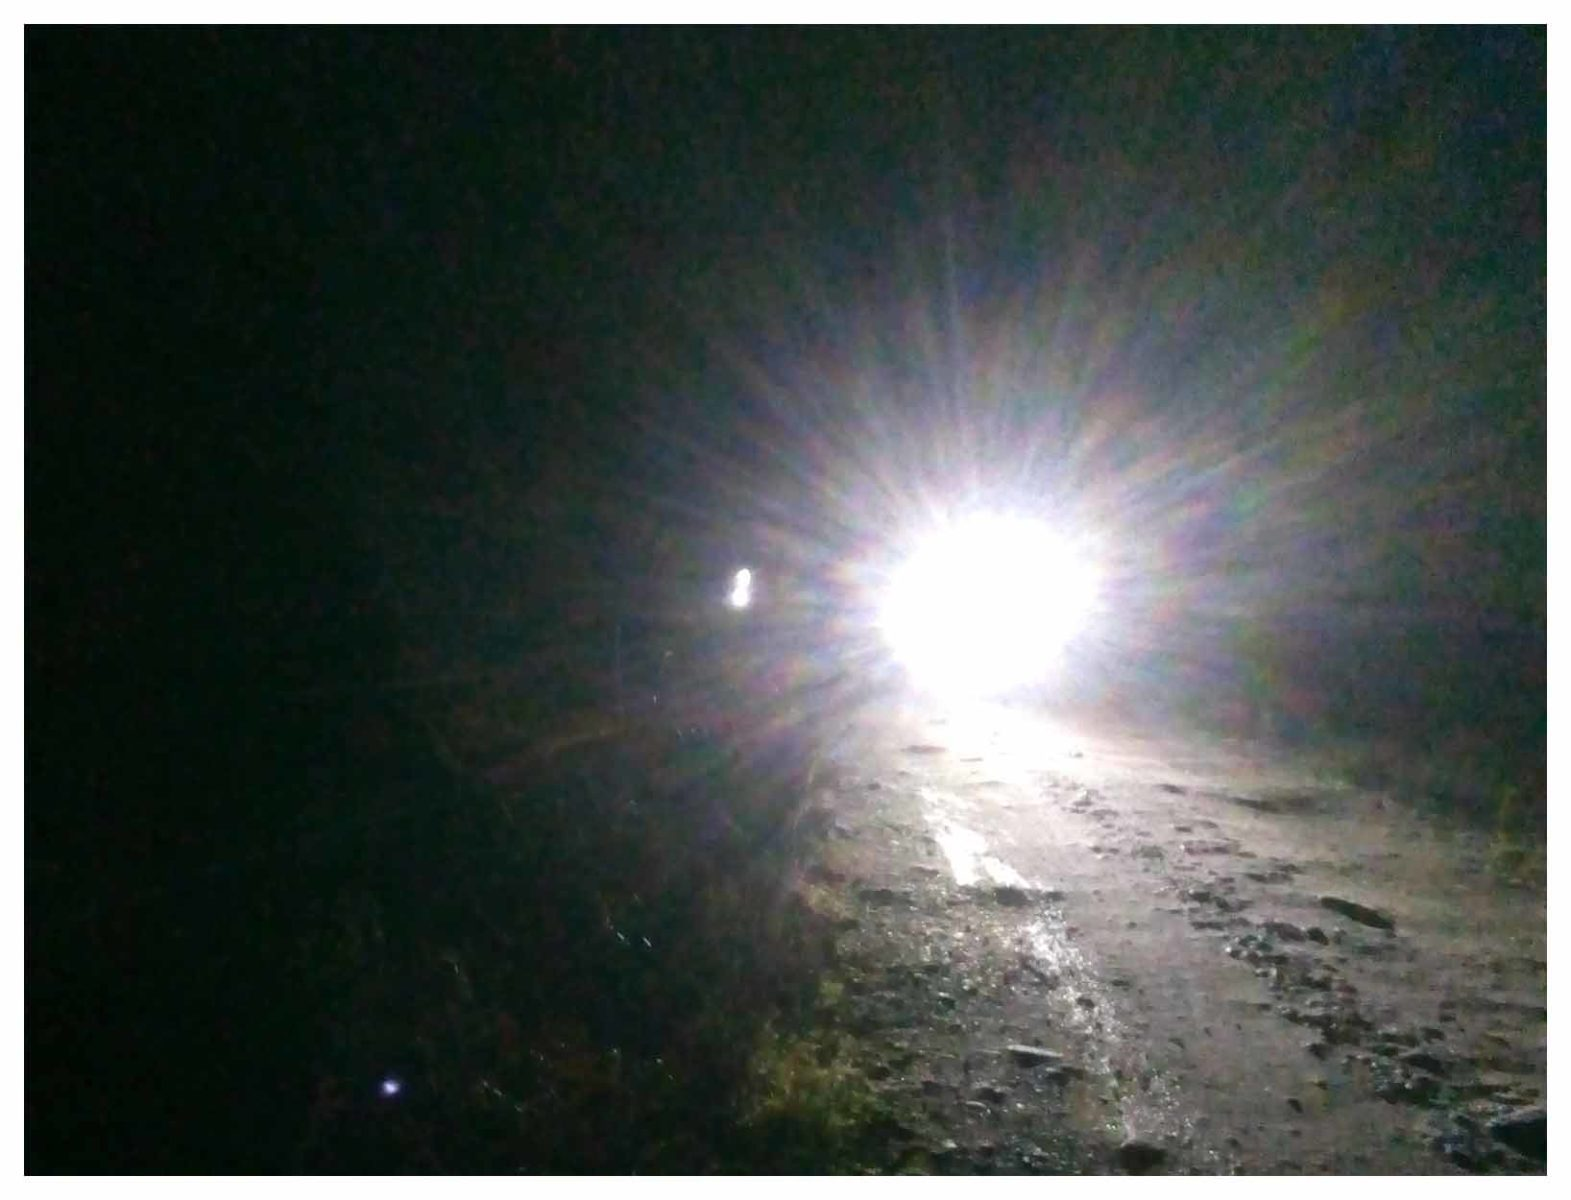 Image of cyclist in the dark with bright headlights